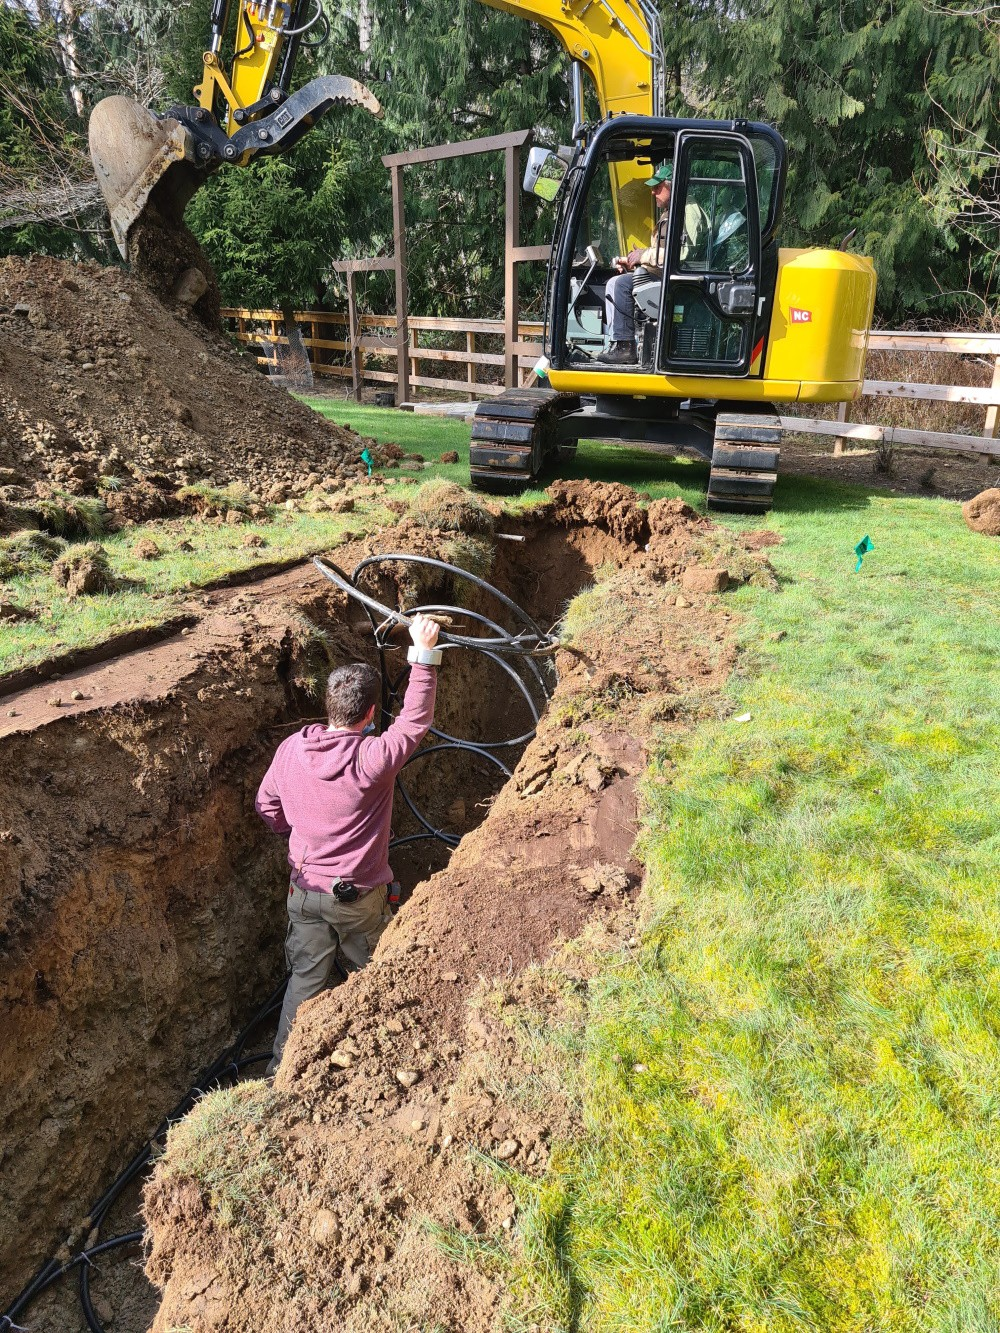 Excavator digging a trench through the yard, installer standing in the trench, shorter than the sides.